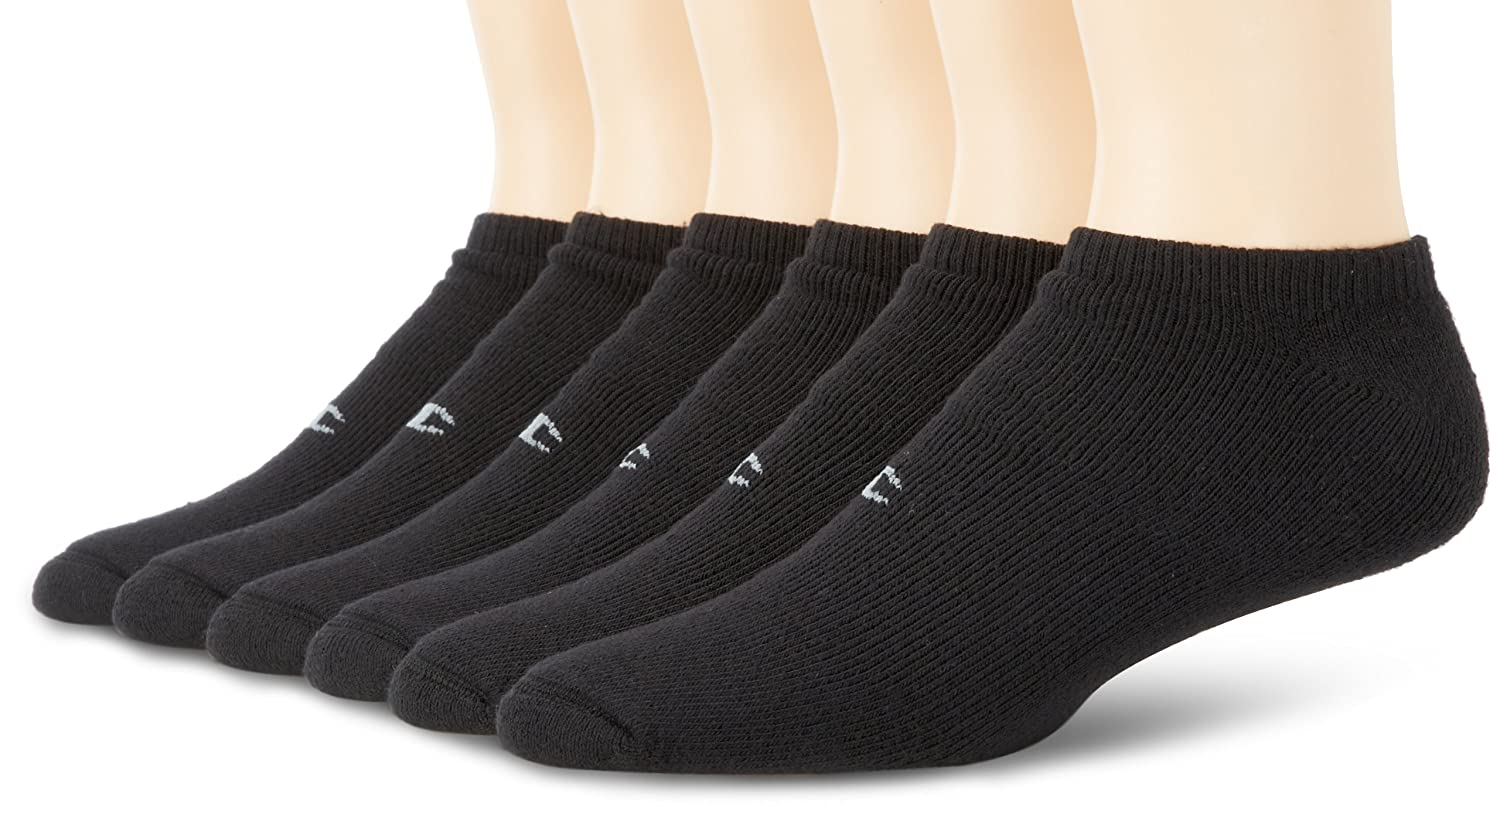 Amazon.com: Champion Mens 6 Pack No Show Sock, Black, Shoe Size 6-12: Clothing